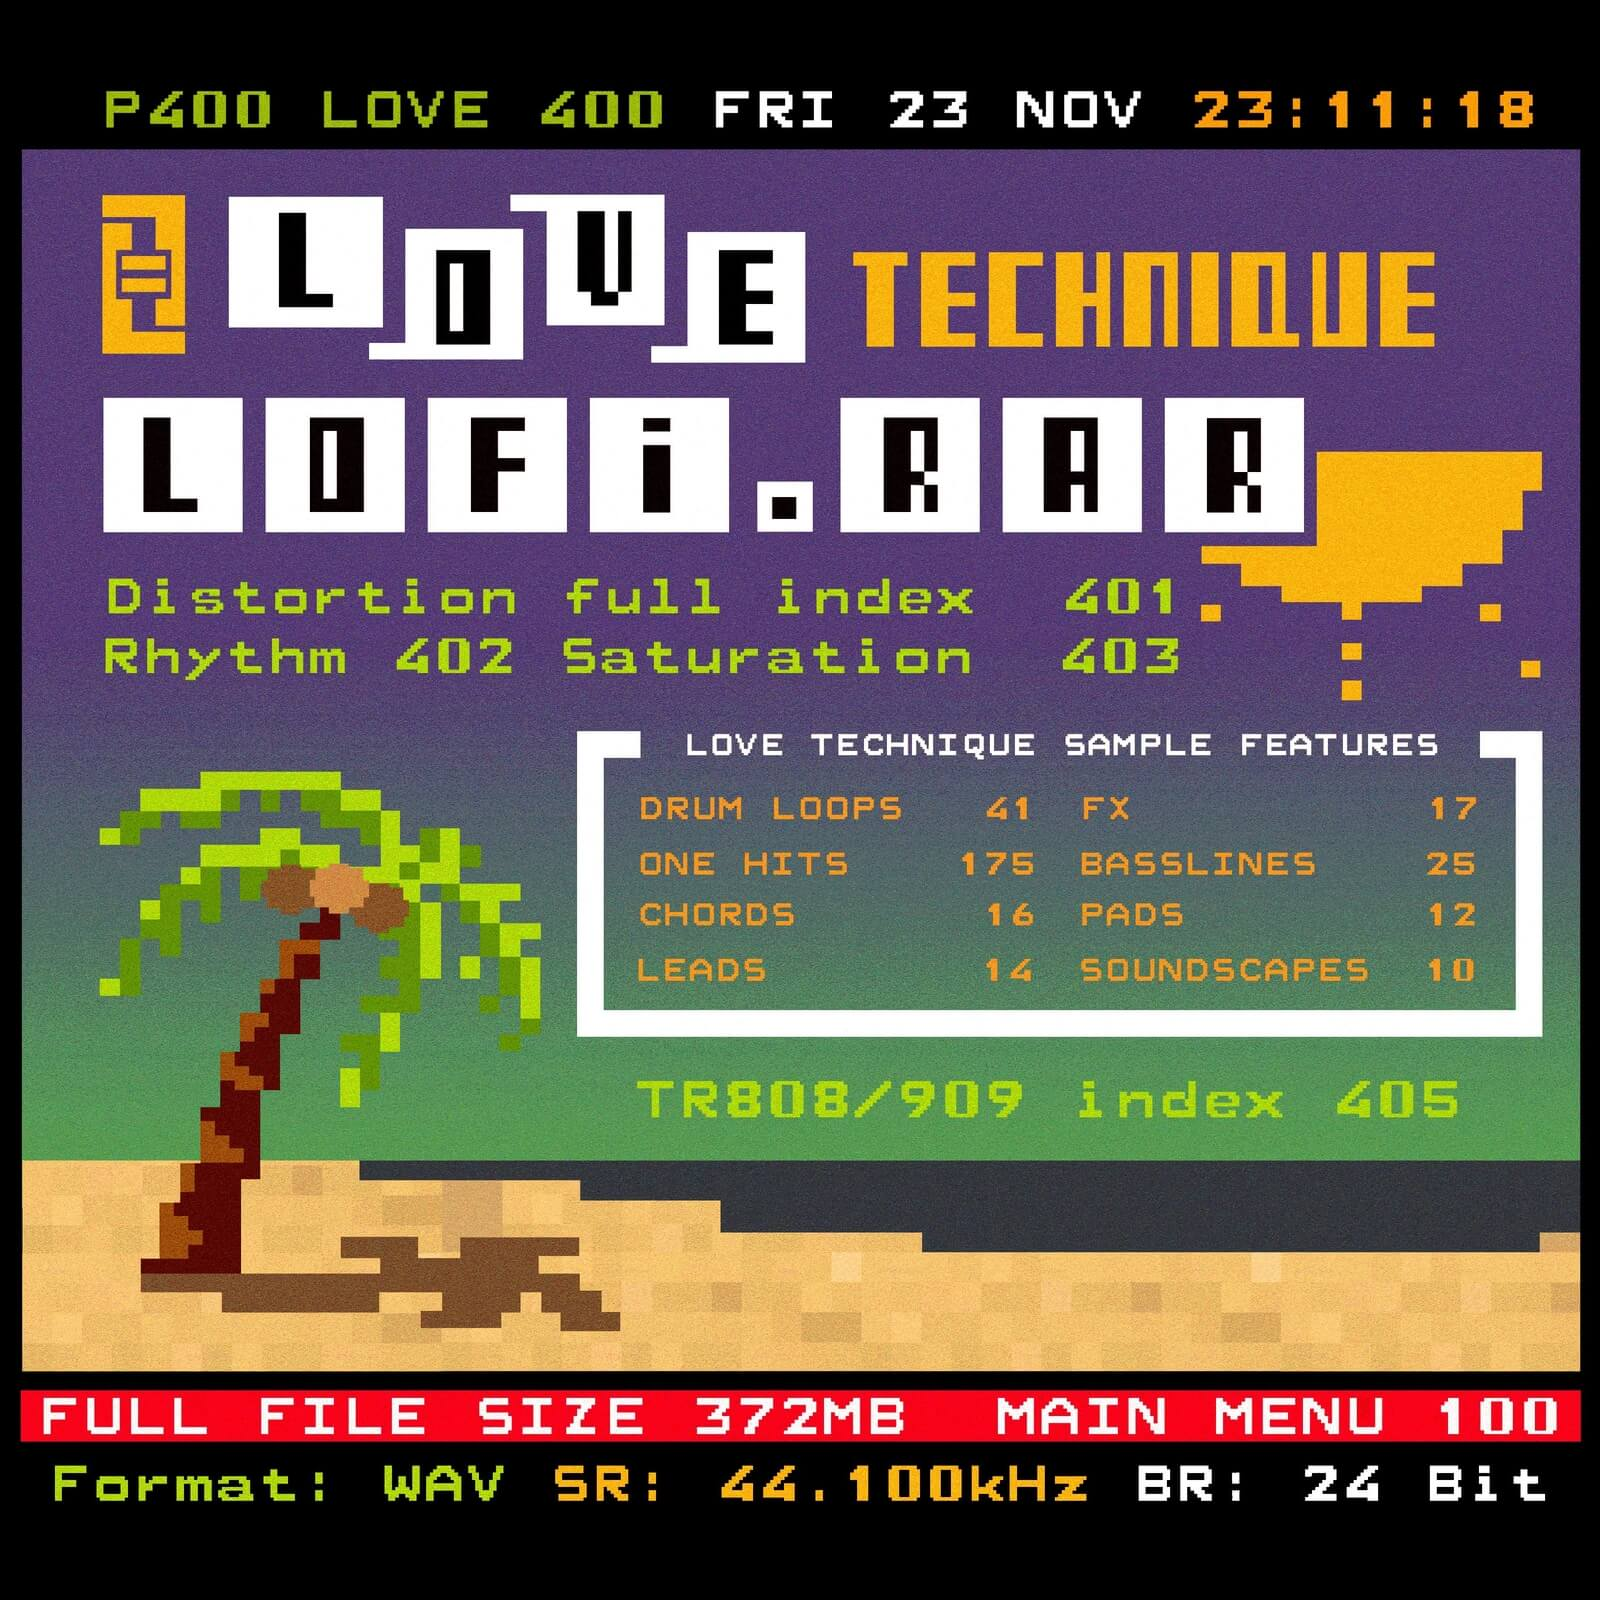 Love Technique launched Lofi rar sample pack for Lo-Fi House